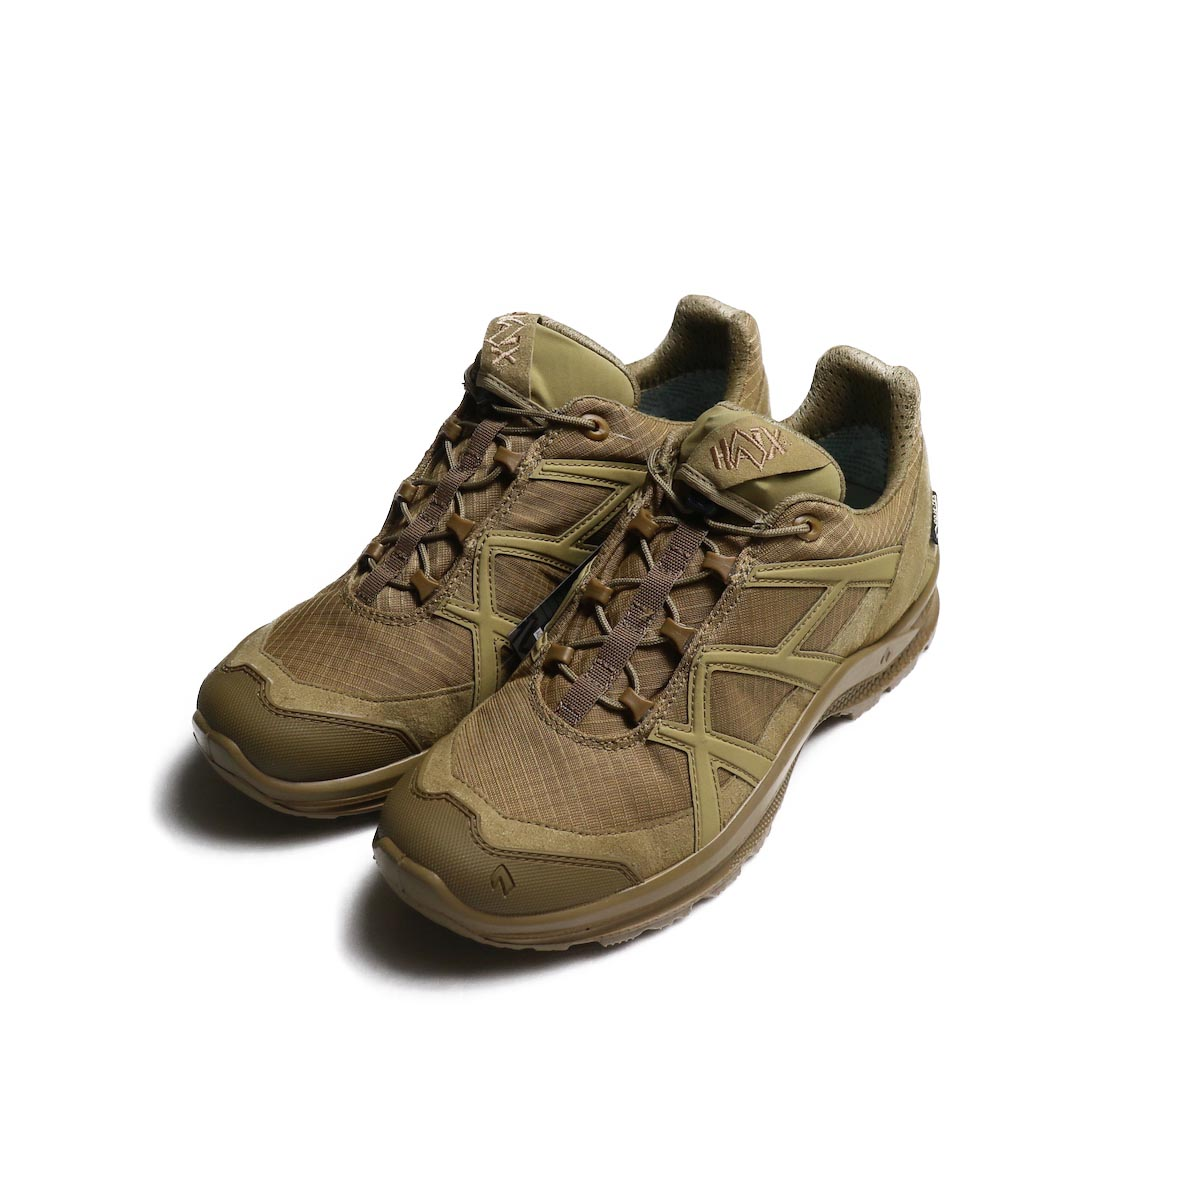 HAIX / BLACK EAGLE - ATHLETIC 2.1 GTX LOW (Coyote)